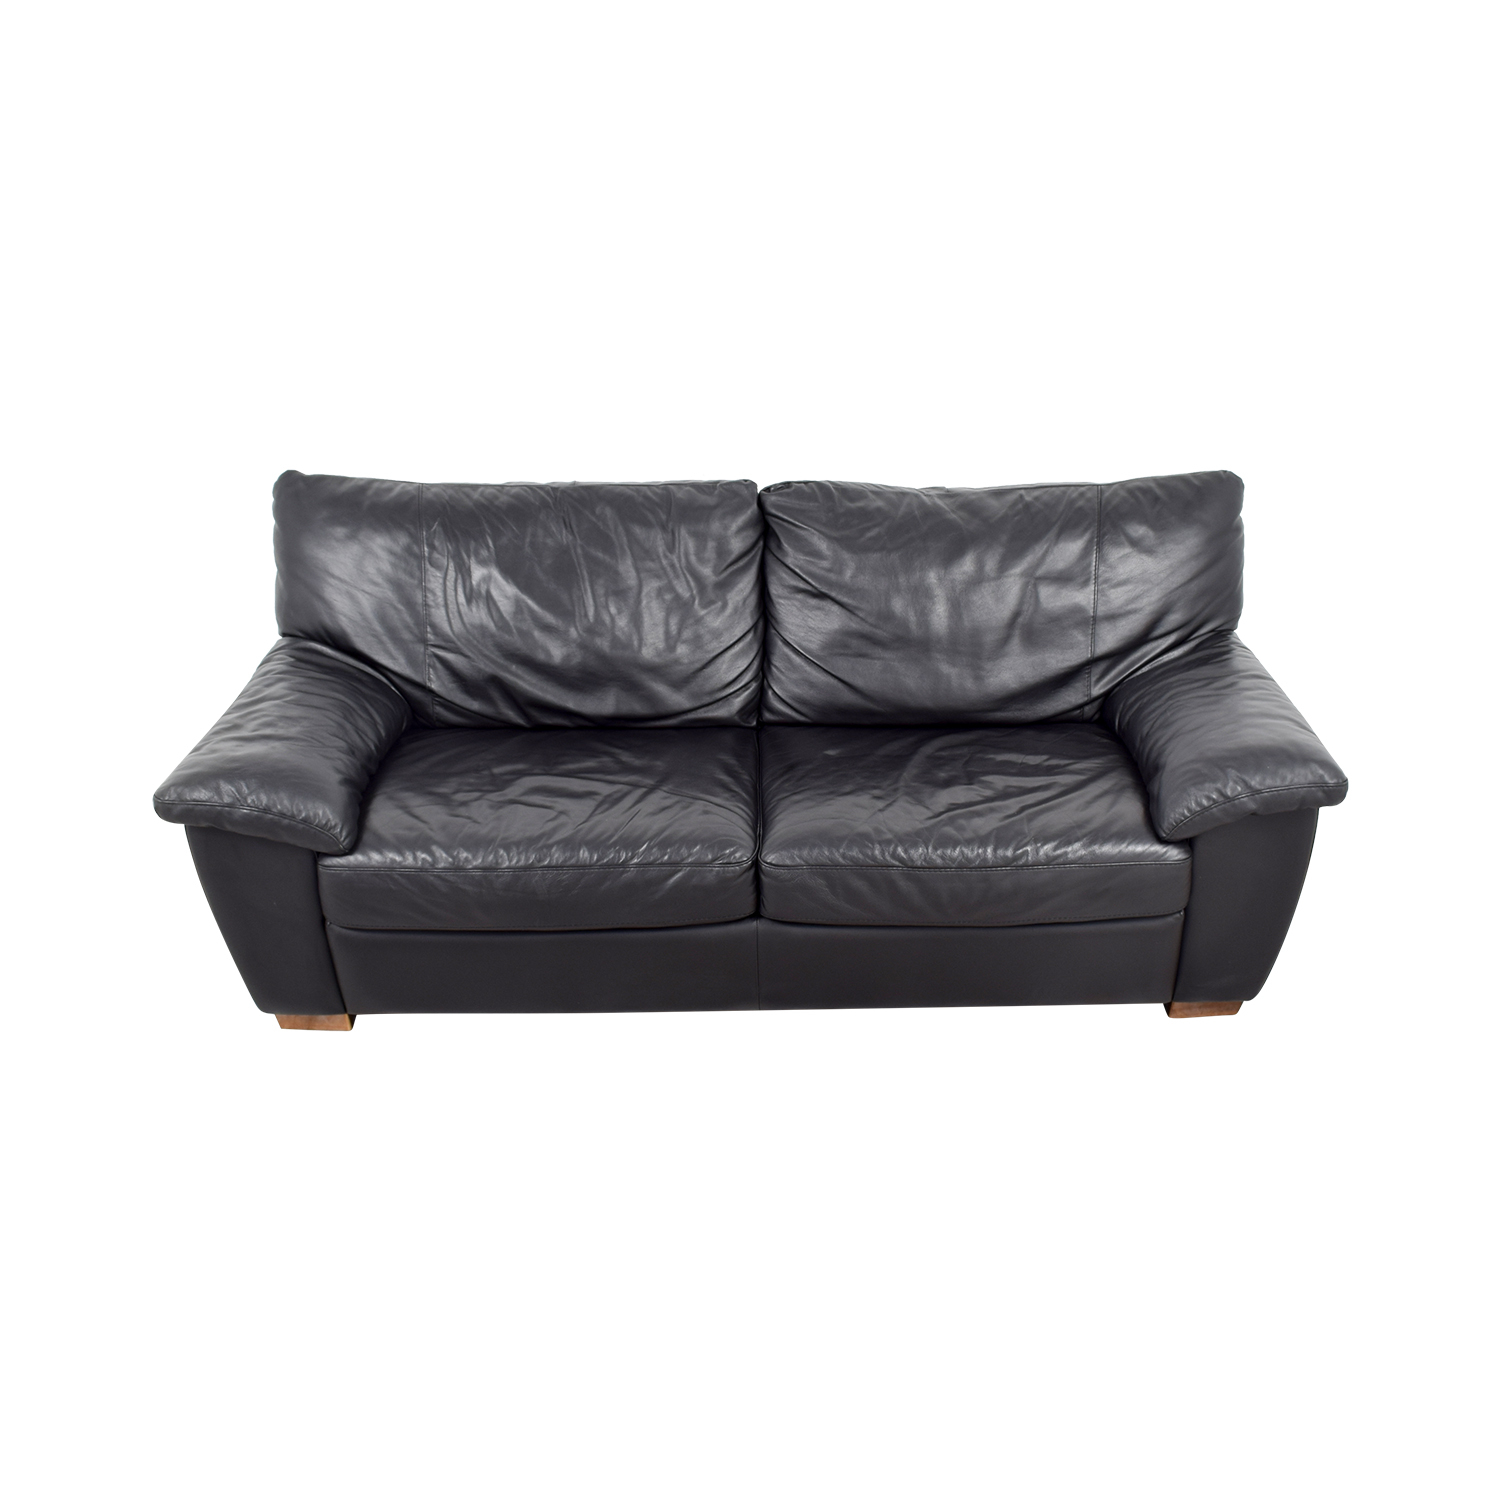 shop IKEA IKEA Black Leather Two-Cushion Couch online